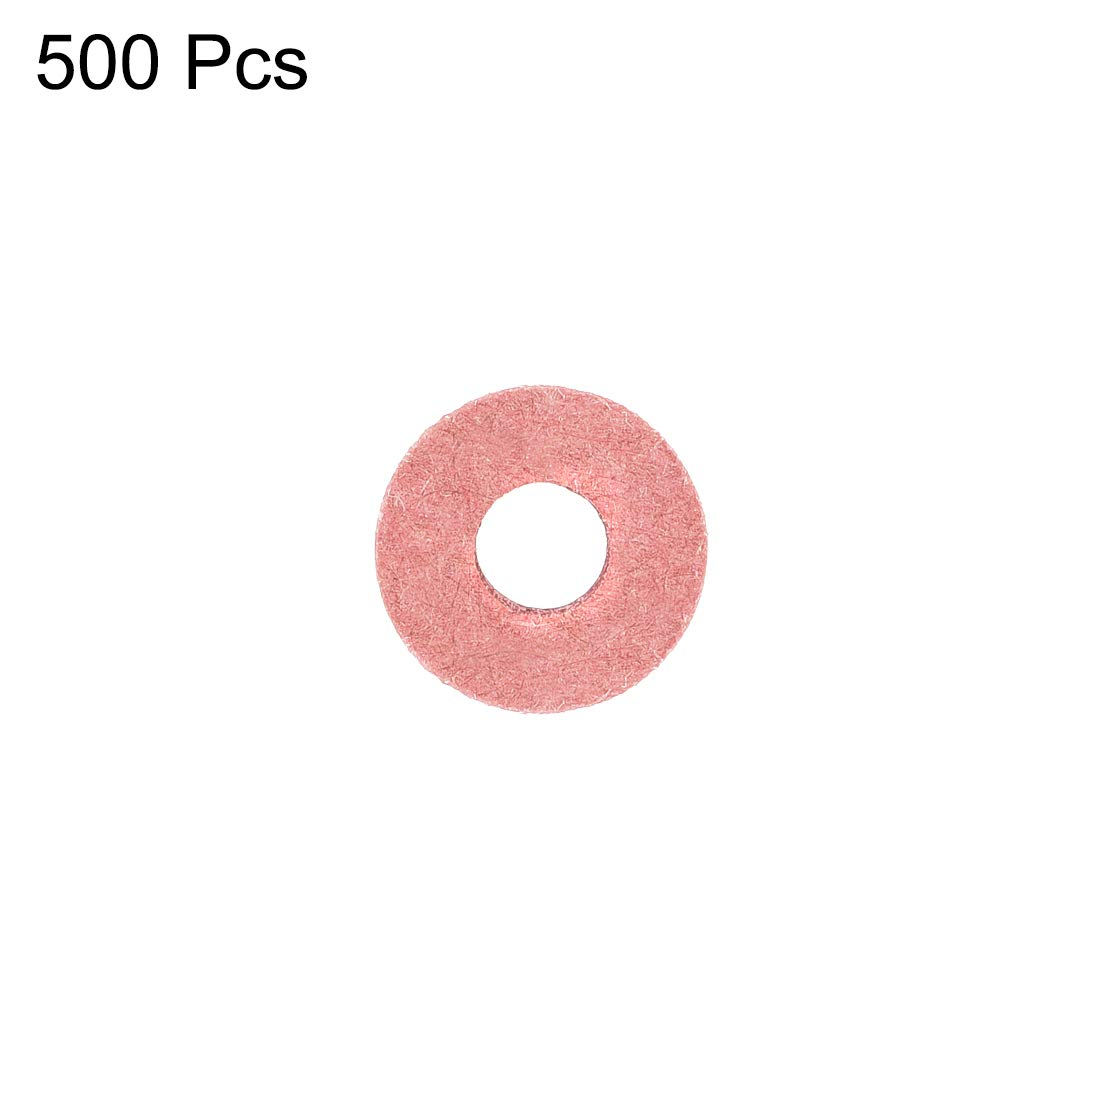 uxcell Insulating Washer Insulation Gasket for Motherboard 500Pcs 6mm x 12mm x 1mm Red Vulcanized Fiber Washer